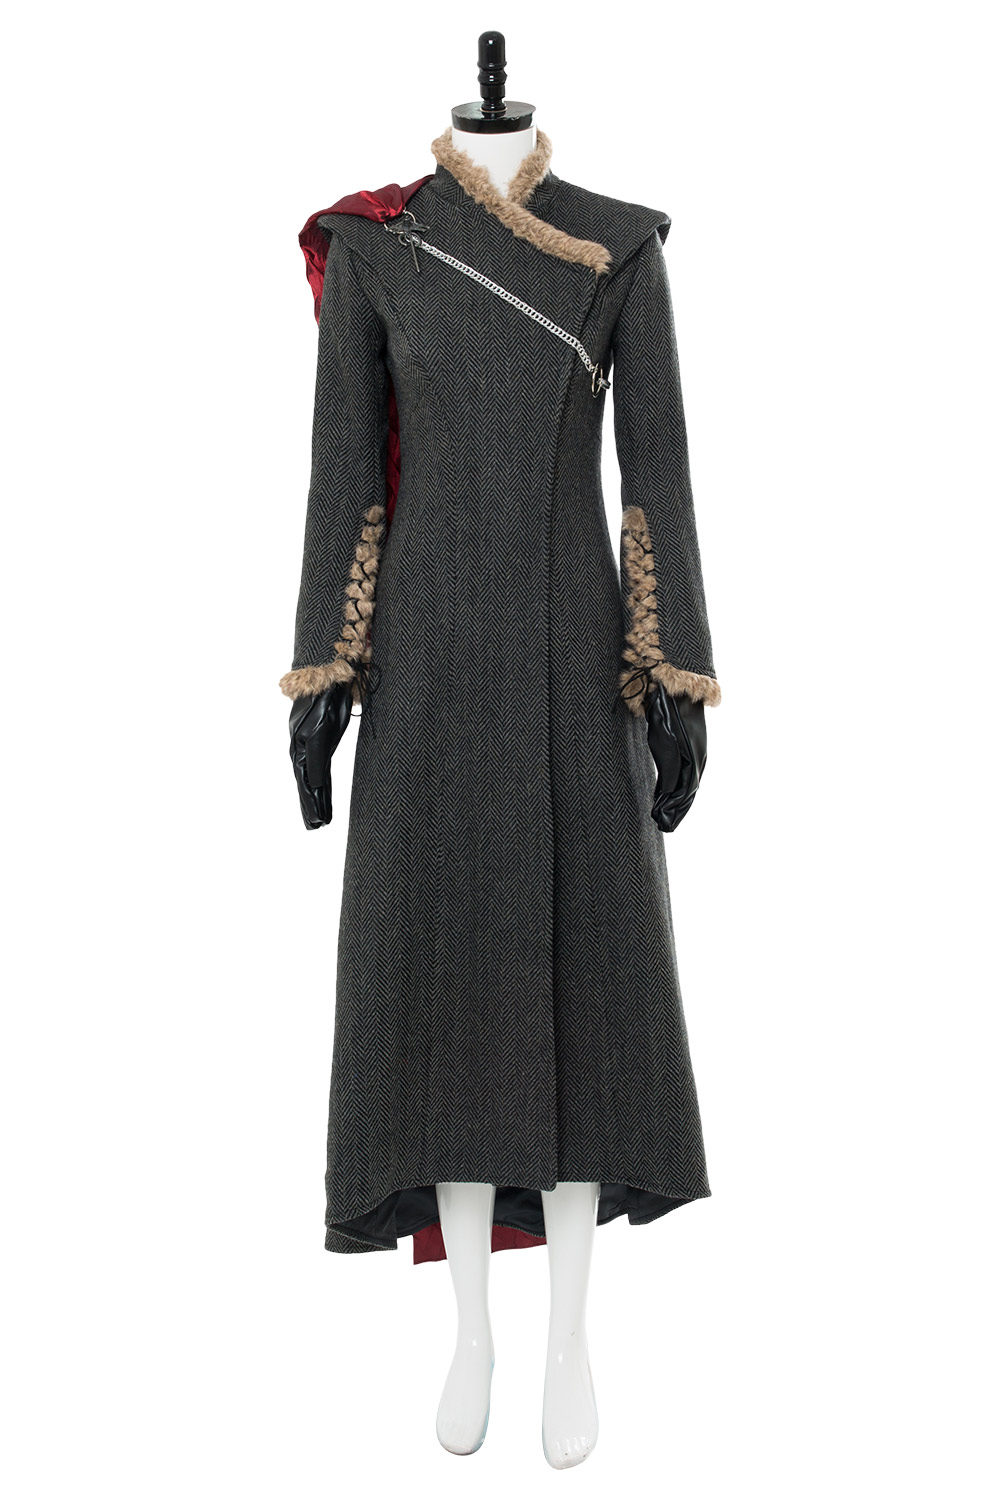 Daenerys Targaryen Costume Dany Gown Dress Game of Thrones Season 7 Cosplay Mother of Dragon Outfit Halloween Cosplay costume